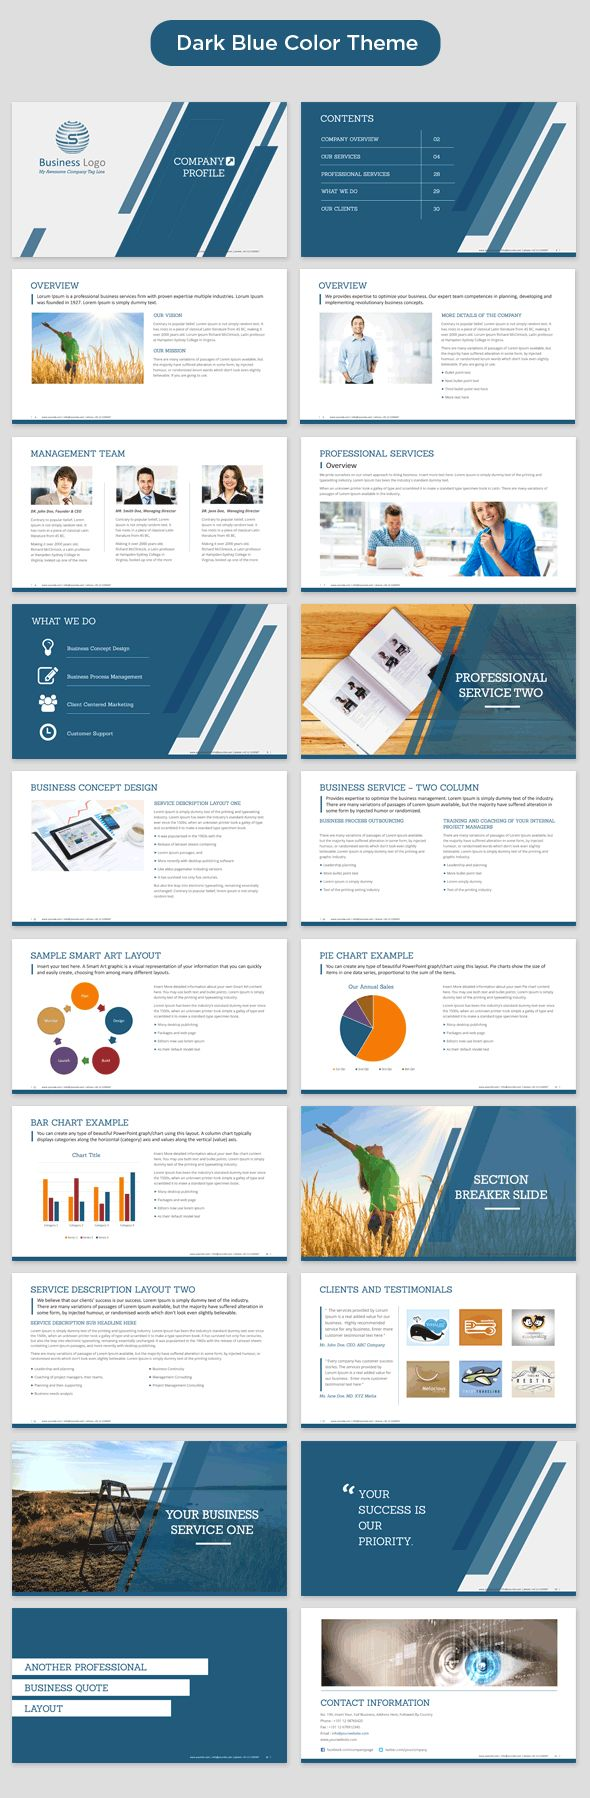 company profile powerpoint template dark blue preview                                                                                                                                                                                 More